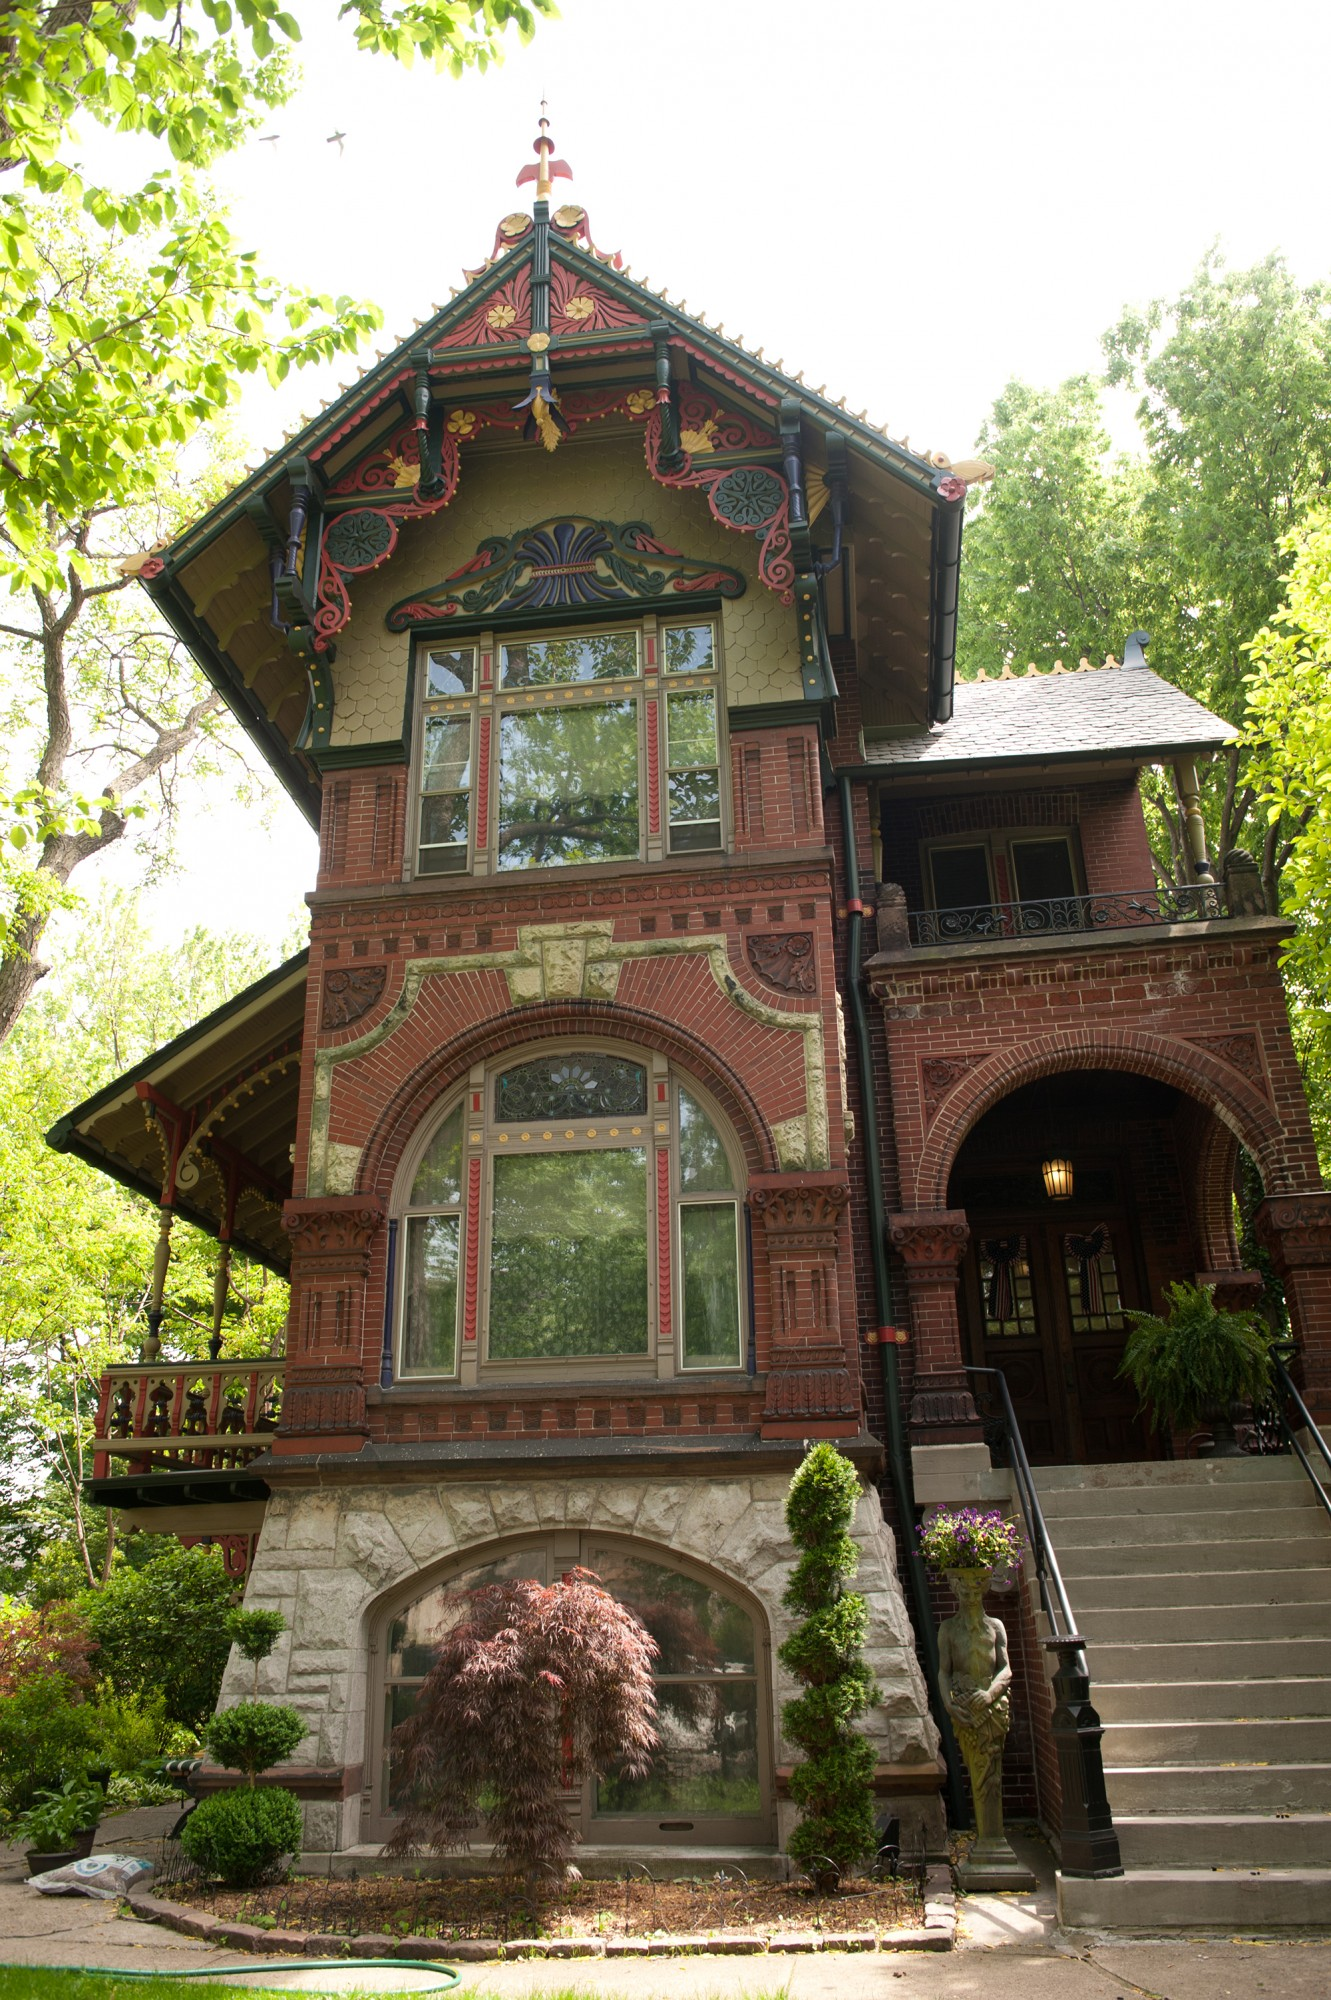 Historic Chicago Architecture wicker park: learn an area/explore investing opportunities($15